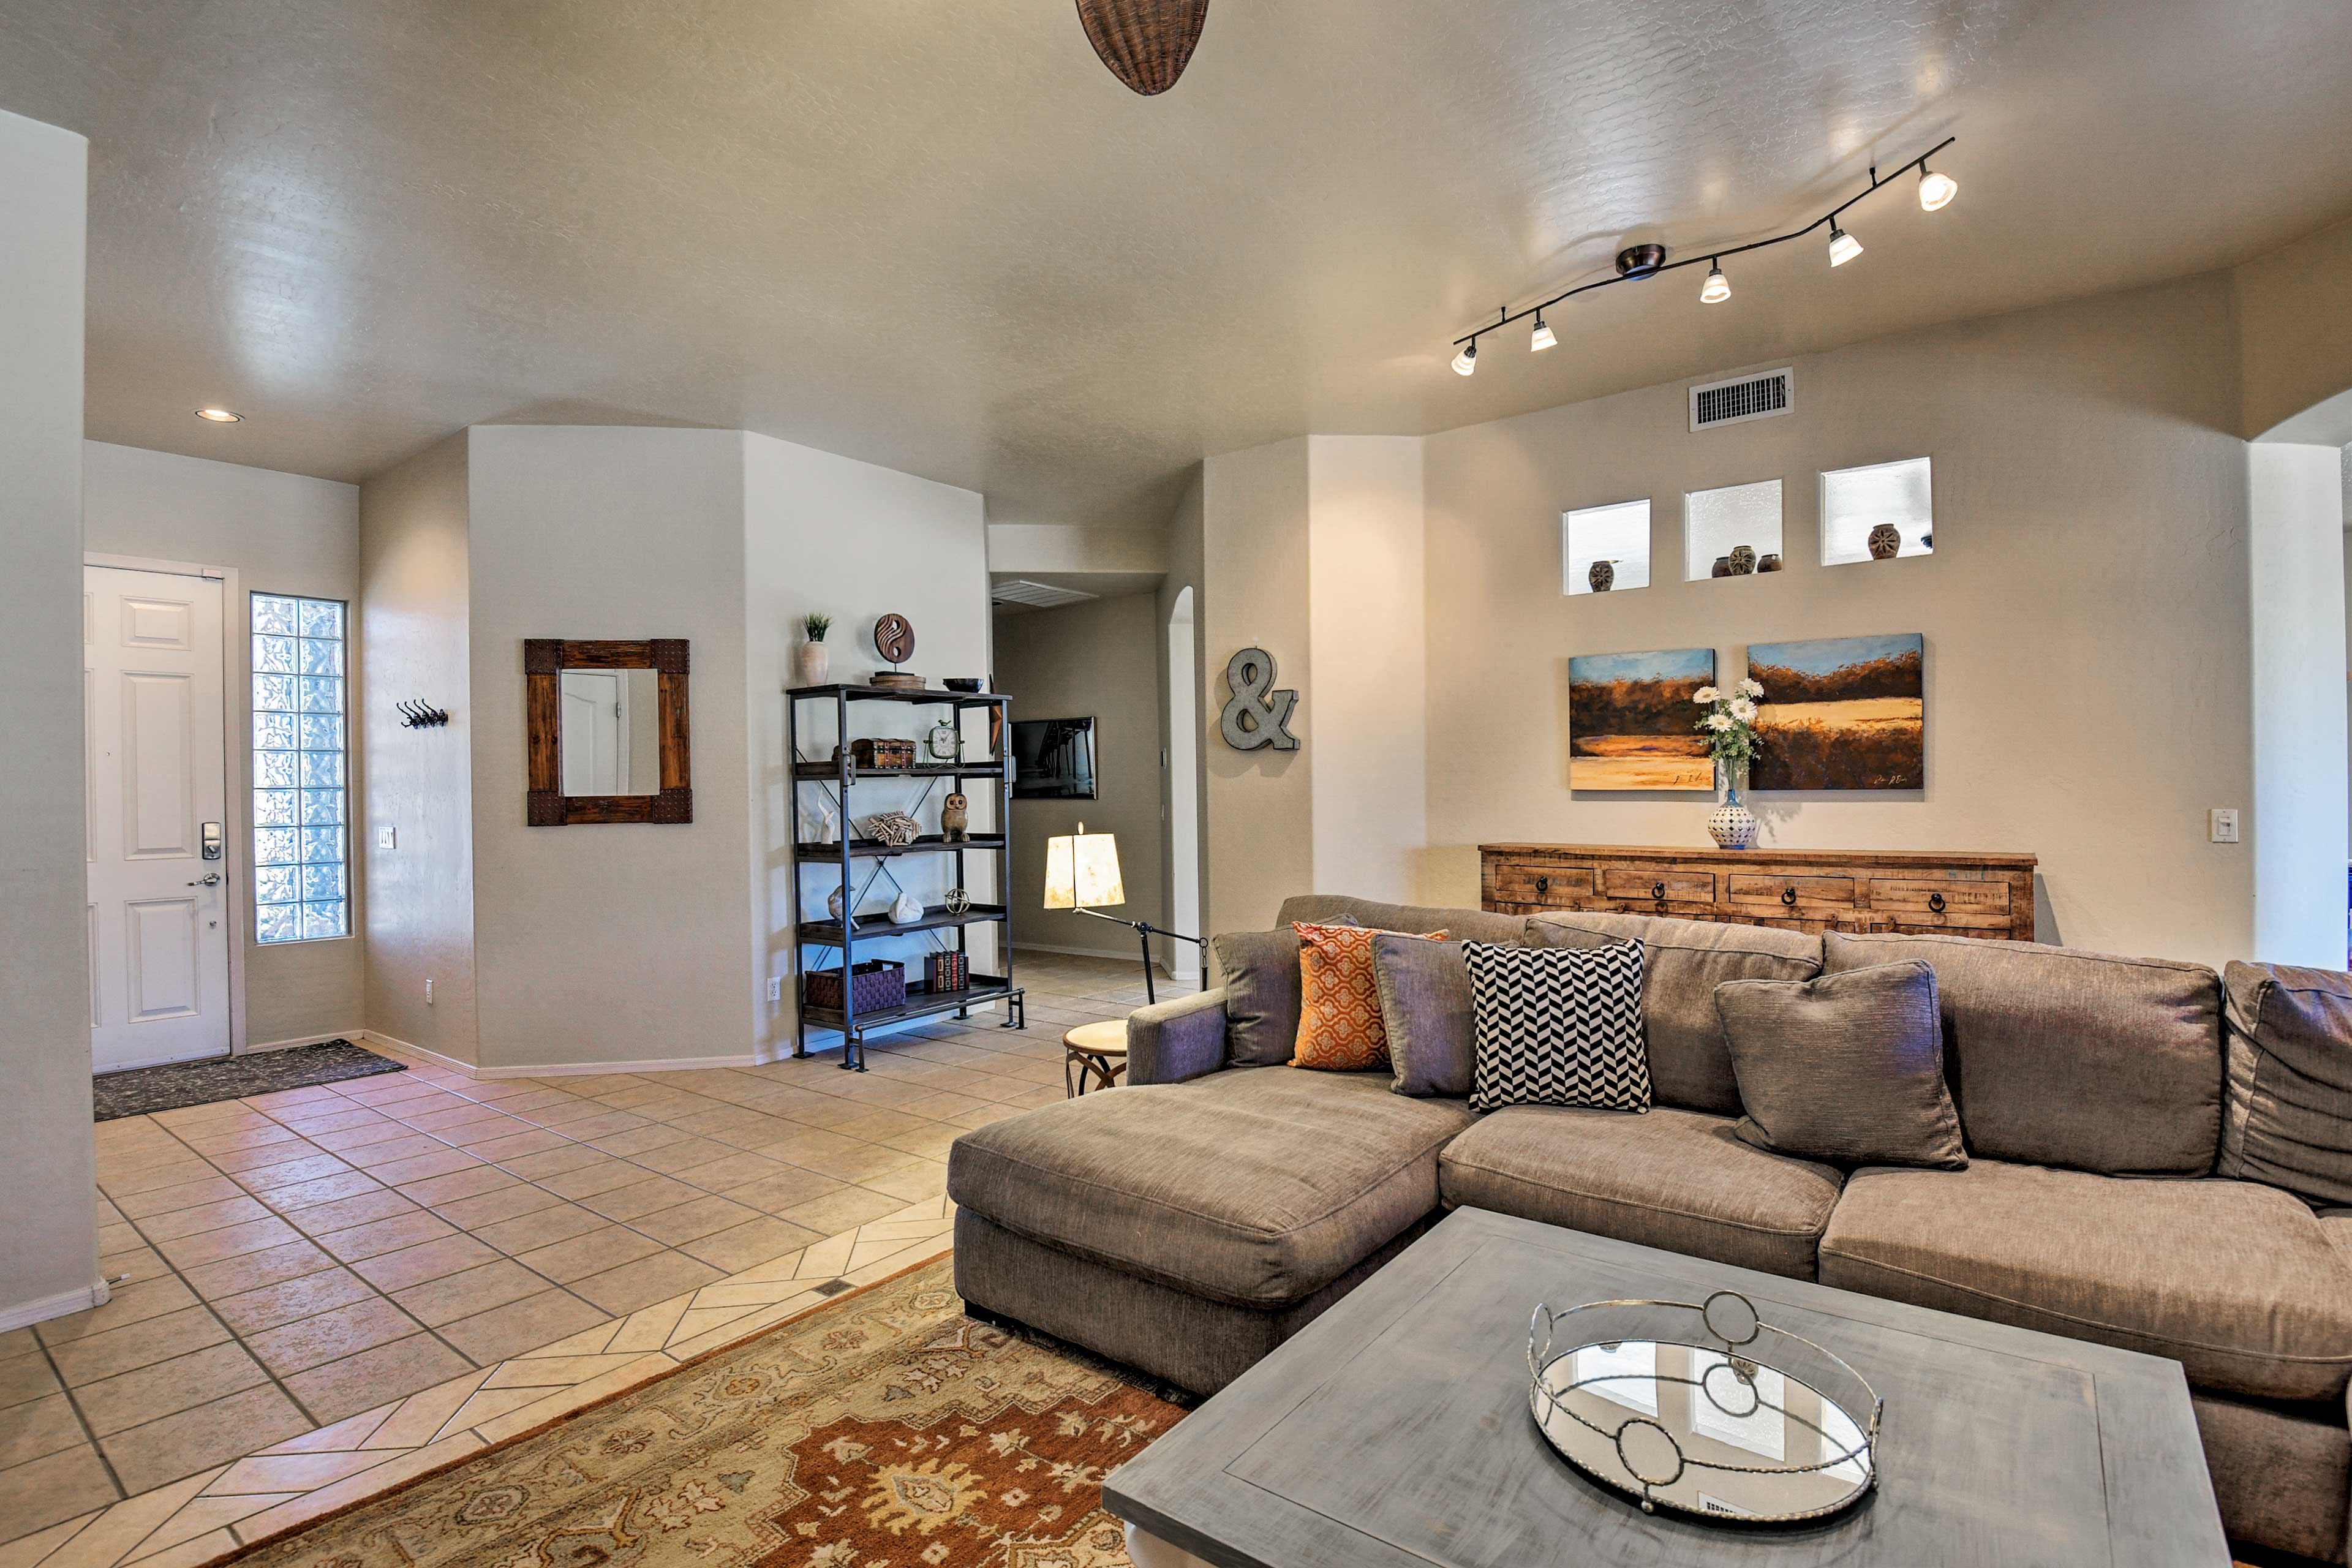 The interior features decor that makes the place feel homey and inviting.